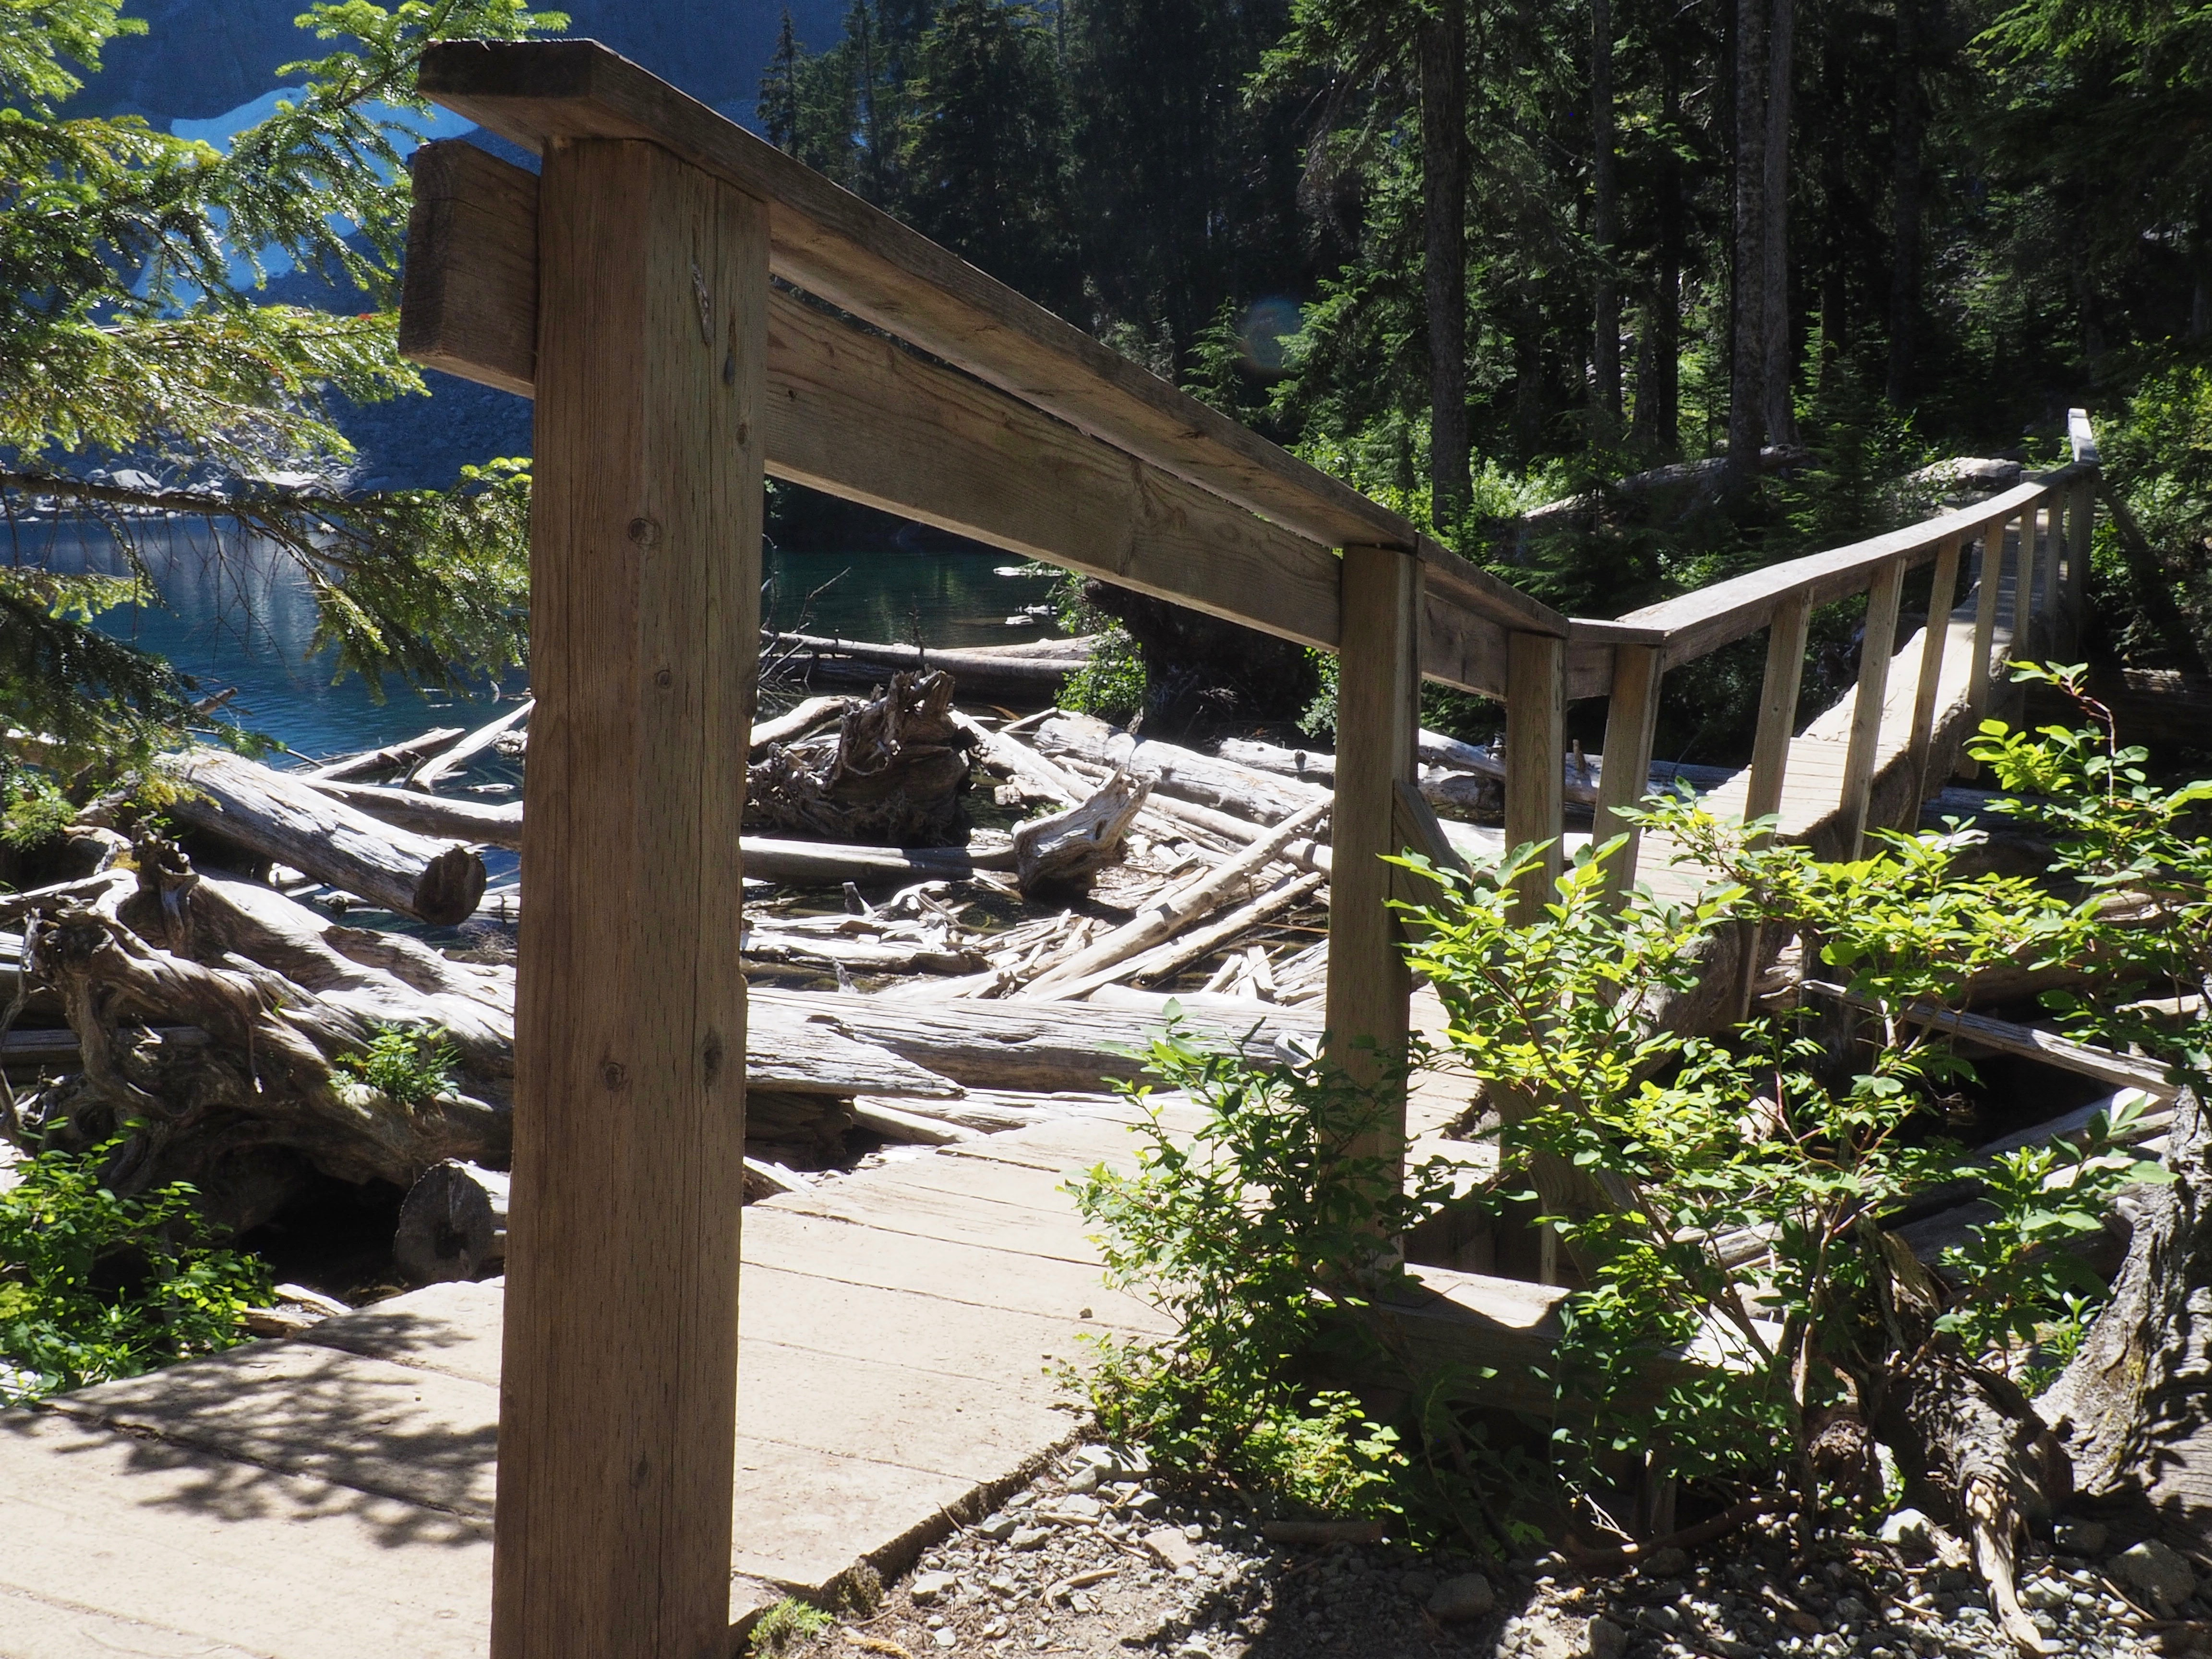 A haphazard, yet sturdy footbridge leads across Lake Serene's outlet to Bridal Veil Creek. Lake Serene Trail, July 31, 2017.